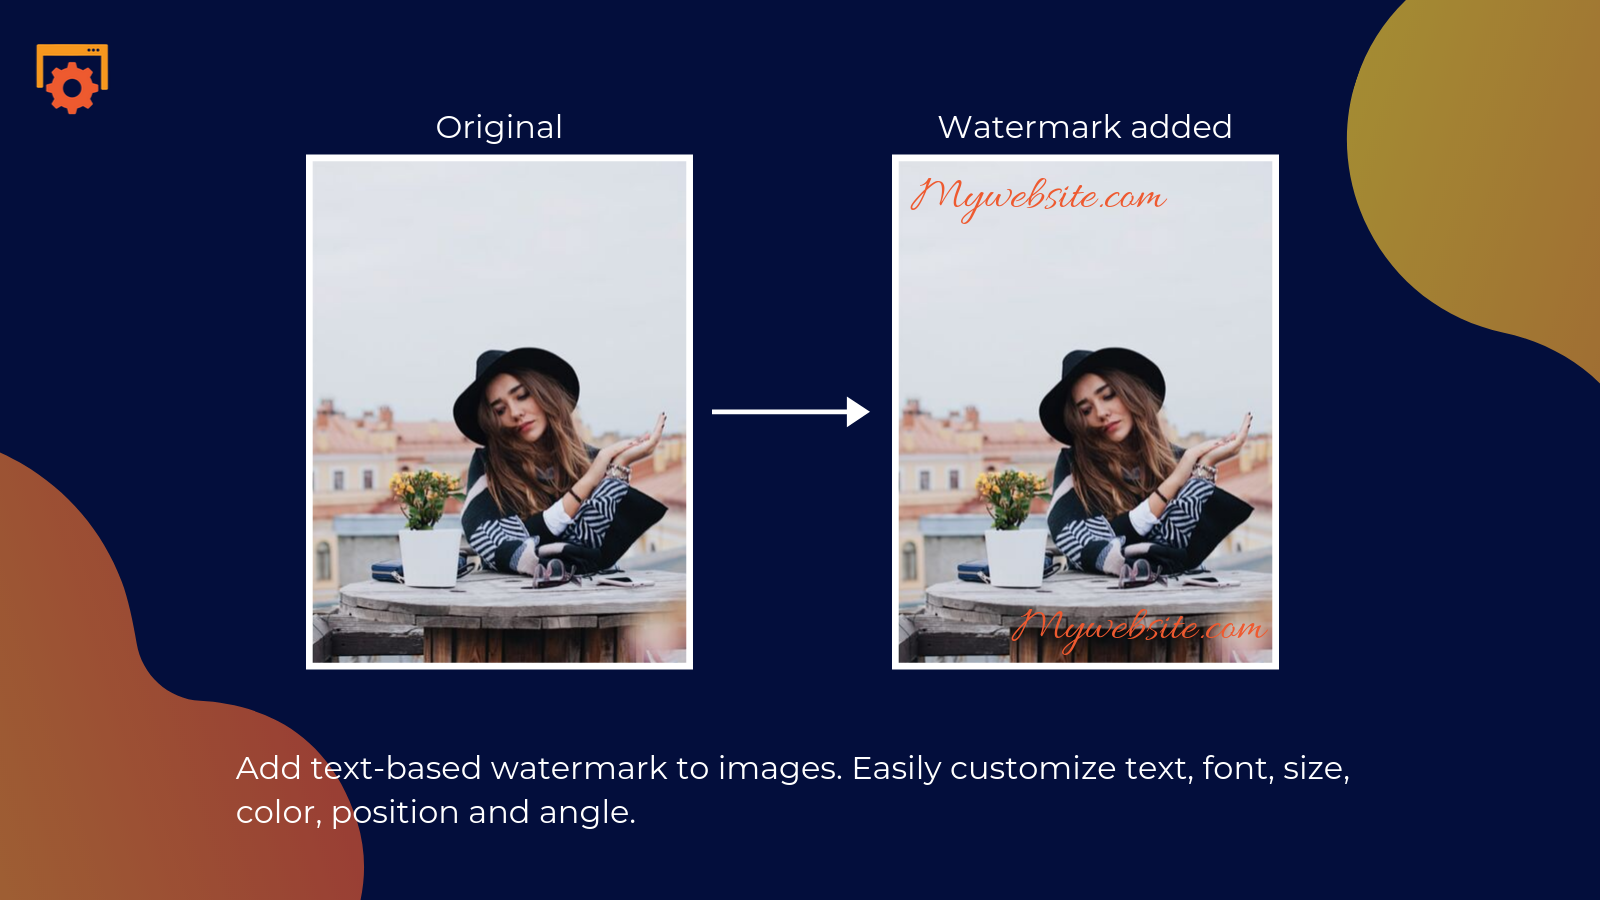 shopify smart image optimizer app by Secomapp - Add text-based watermark to images